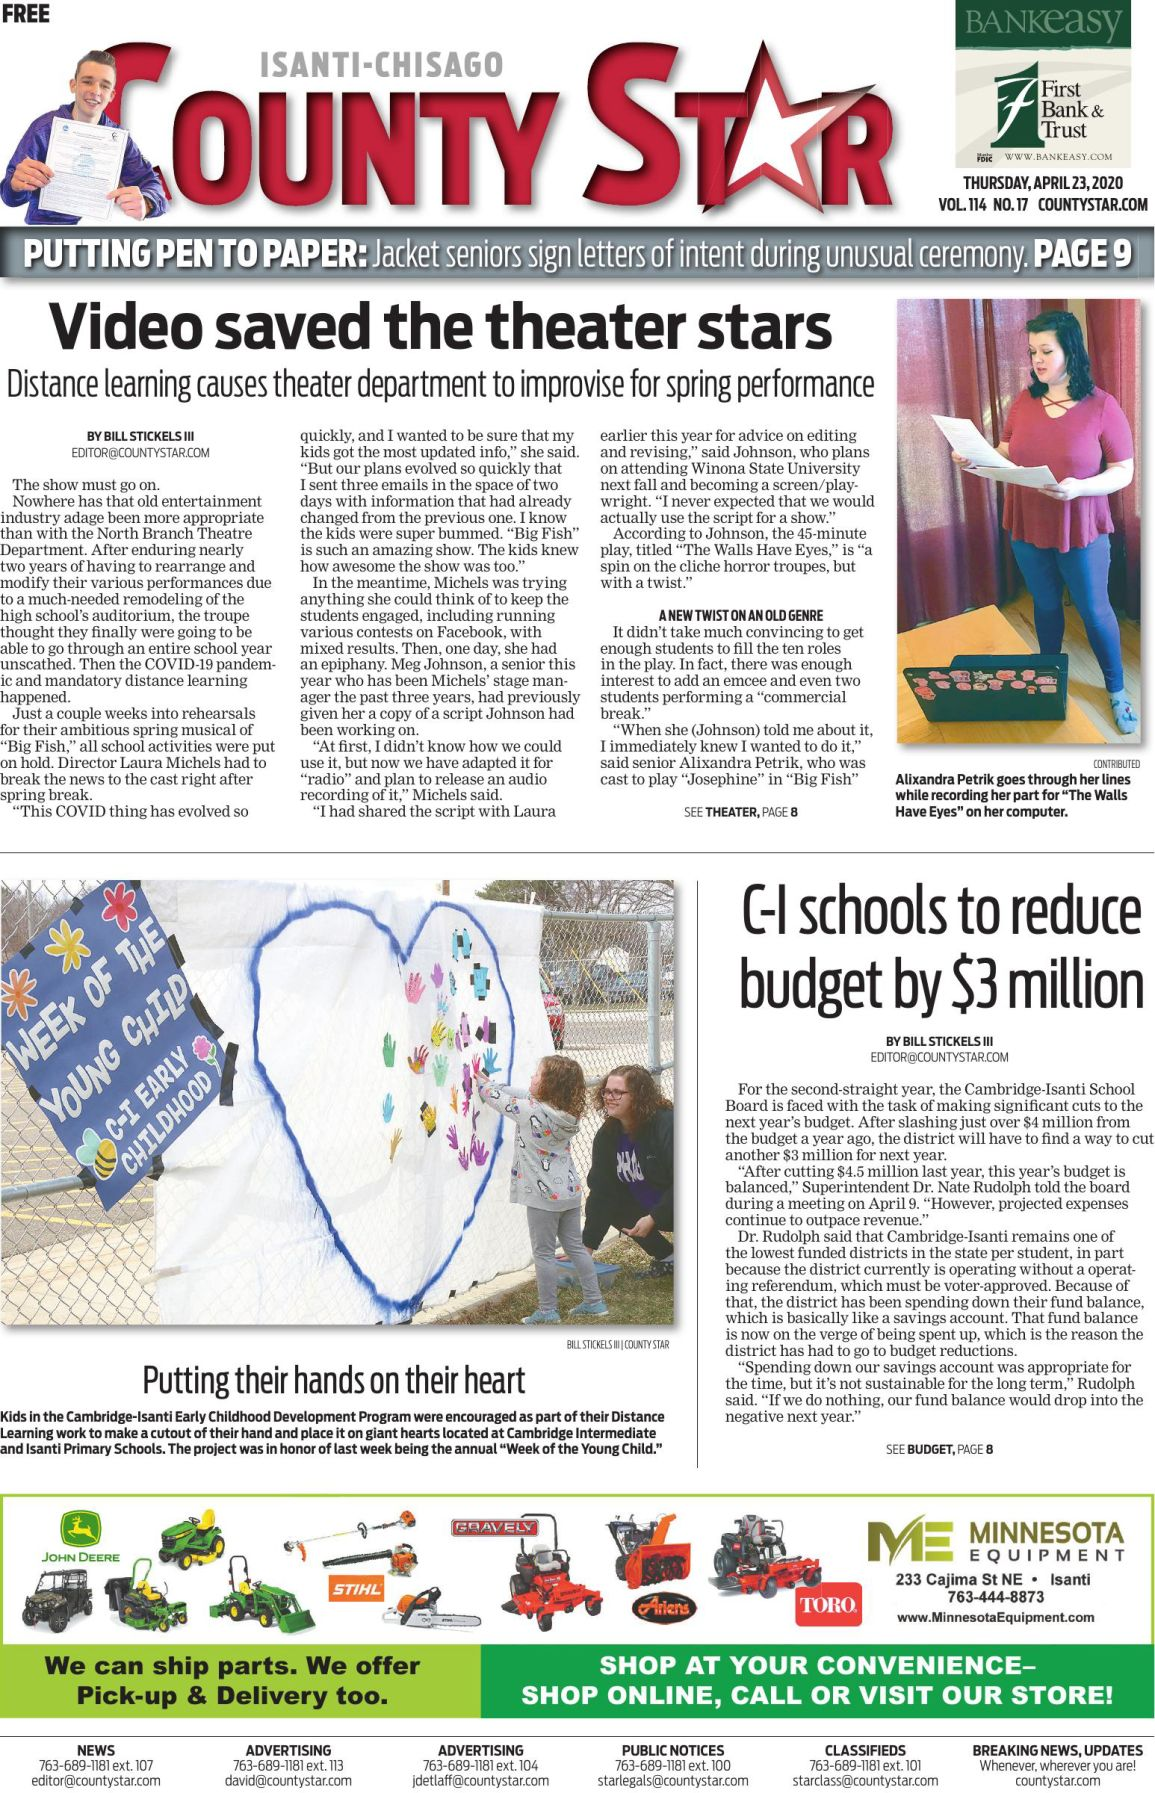 Isanti-Chisago County Star April 23, 2020 e-edition